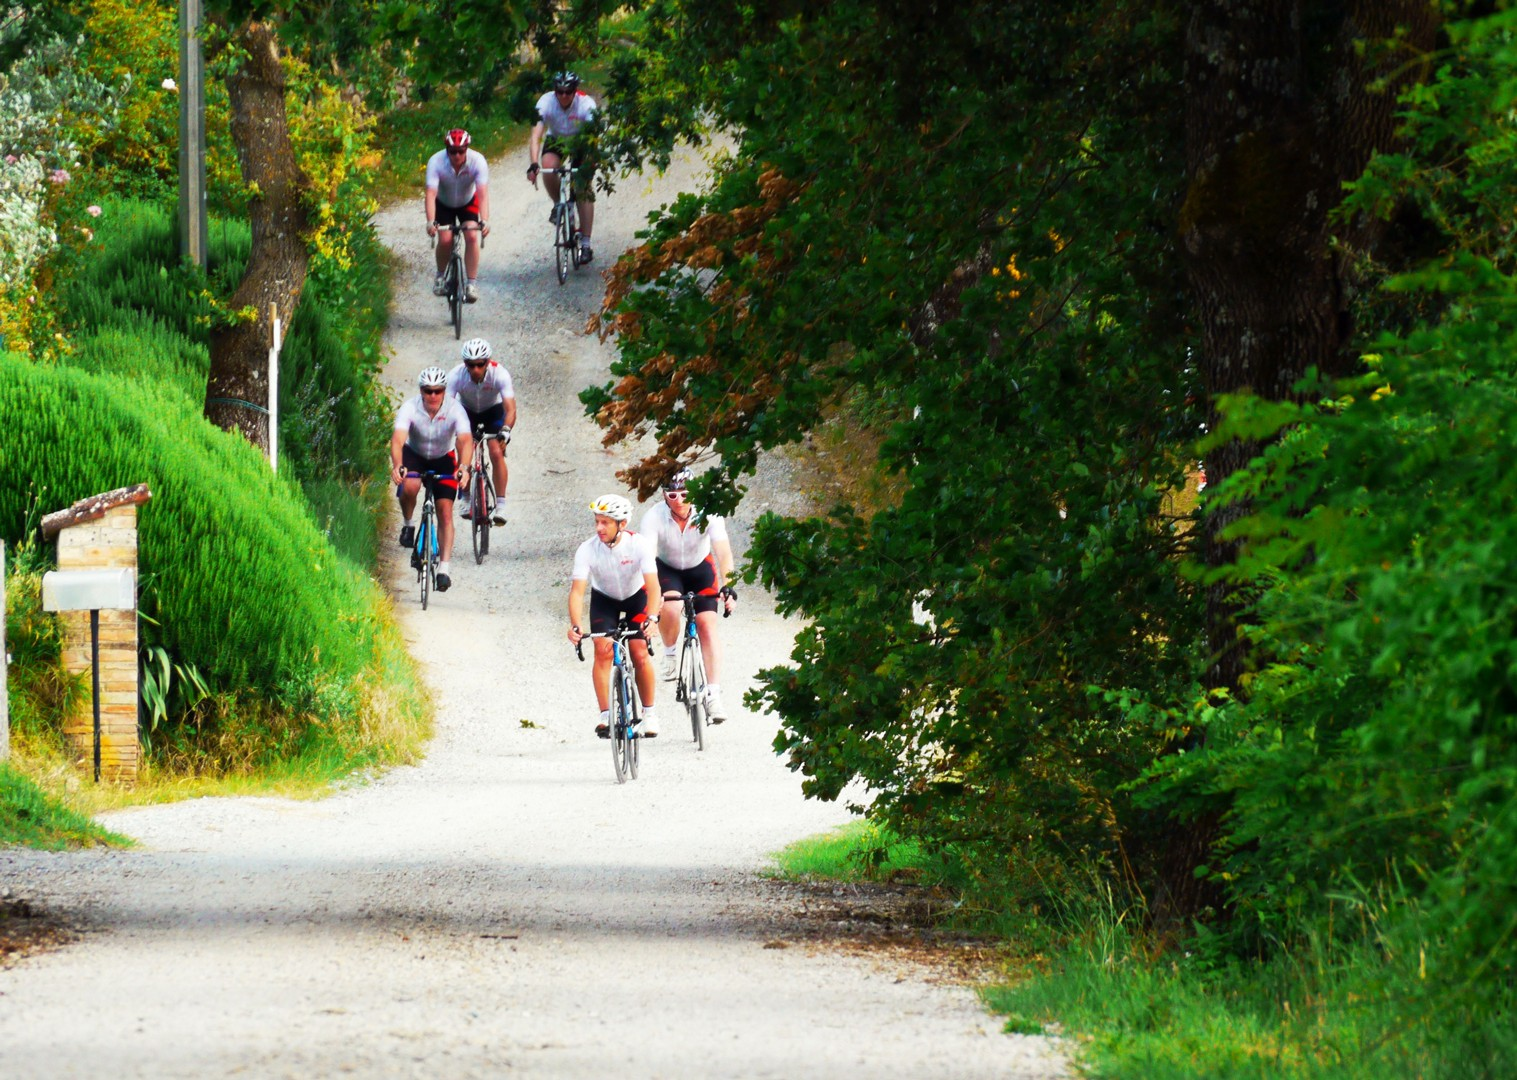 group-guided-cycling-white-roads-italy-tuscany.jpg - Italy - Tuscany Tourer - Guided Road Cycling Holiday - Italia Road Cycling